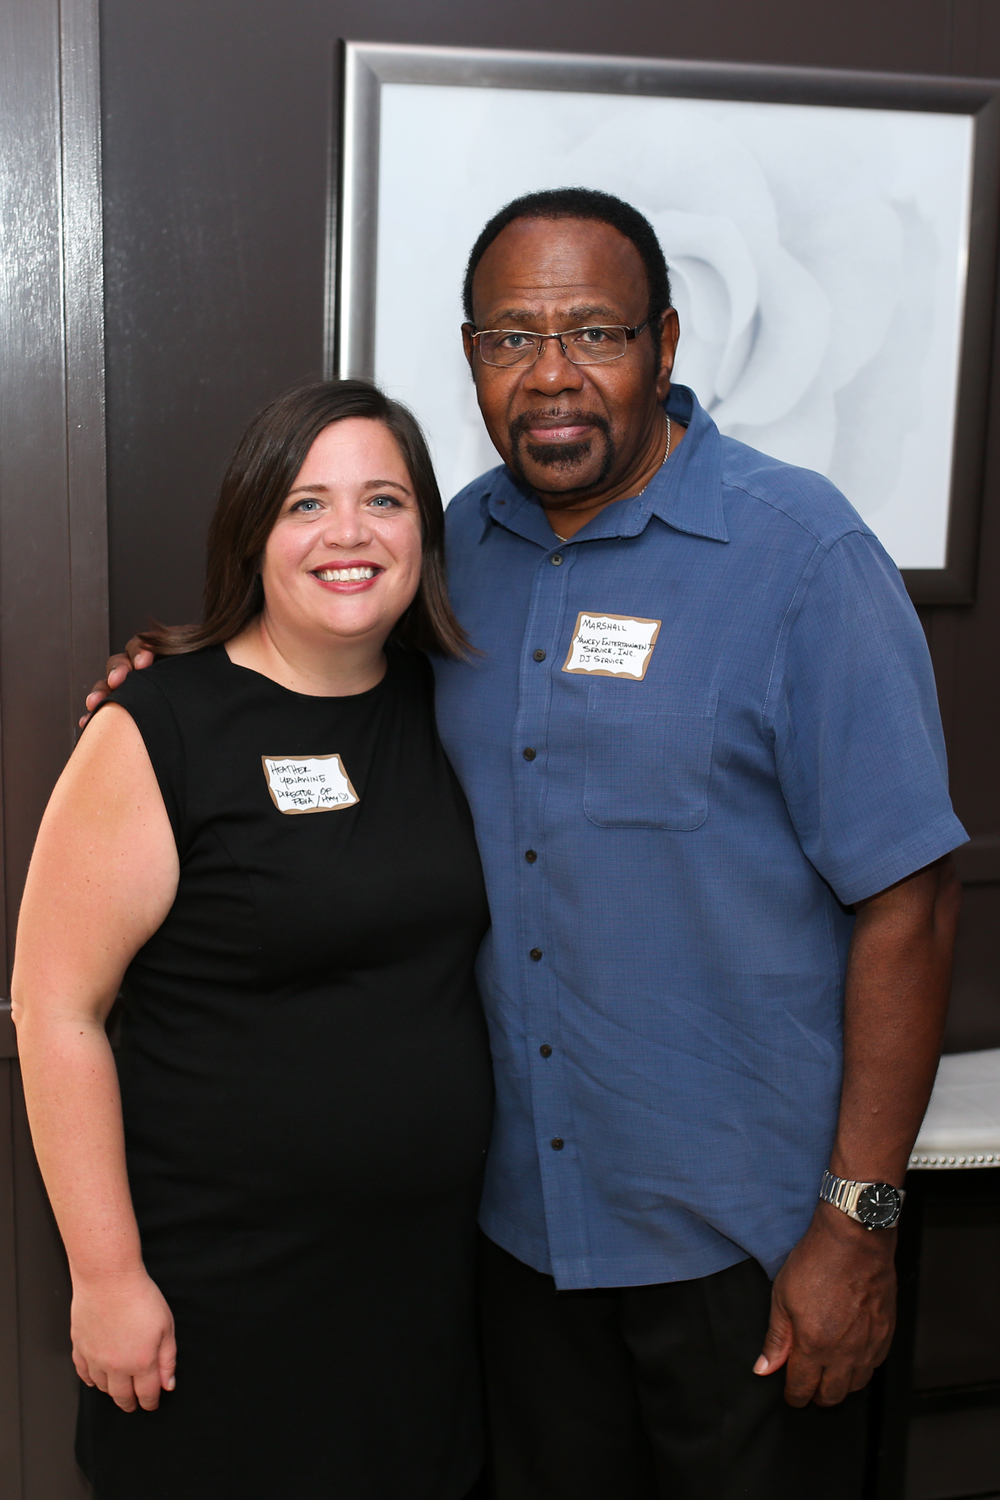 FEVA Member Mixer at The Planet 7-28-16 Crystal Ludwick Photo LLC (32 of 32).jpg